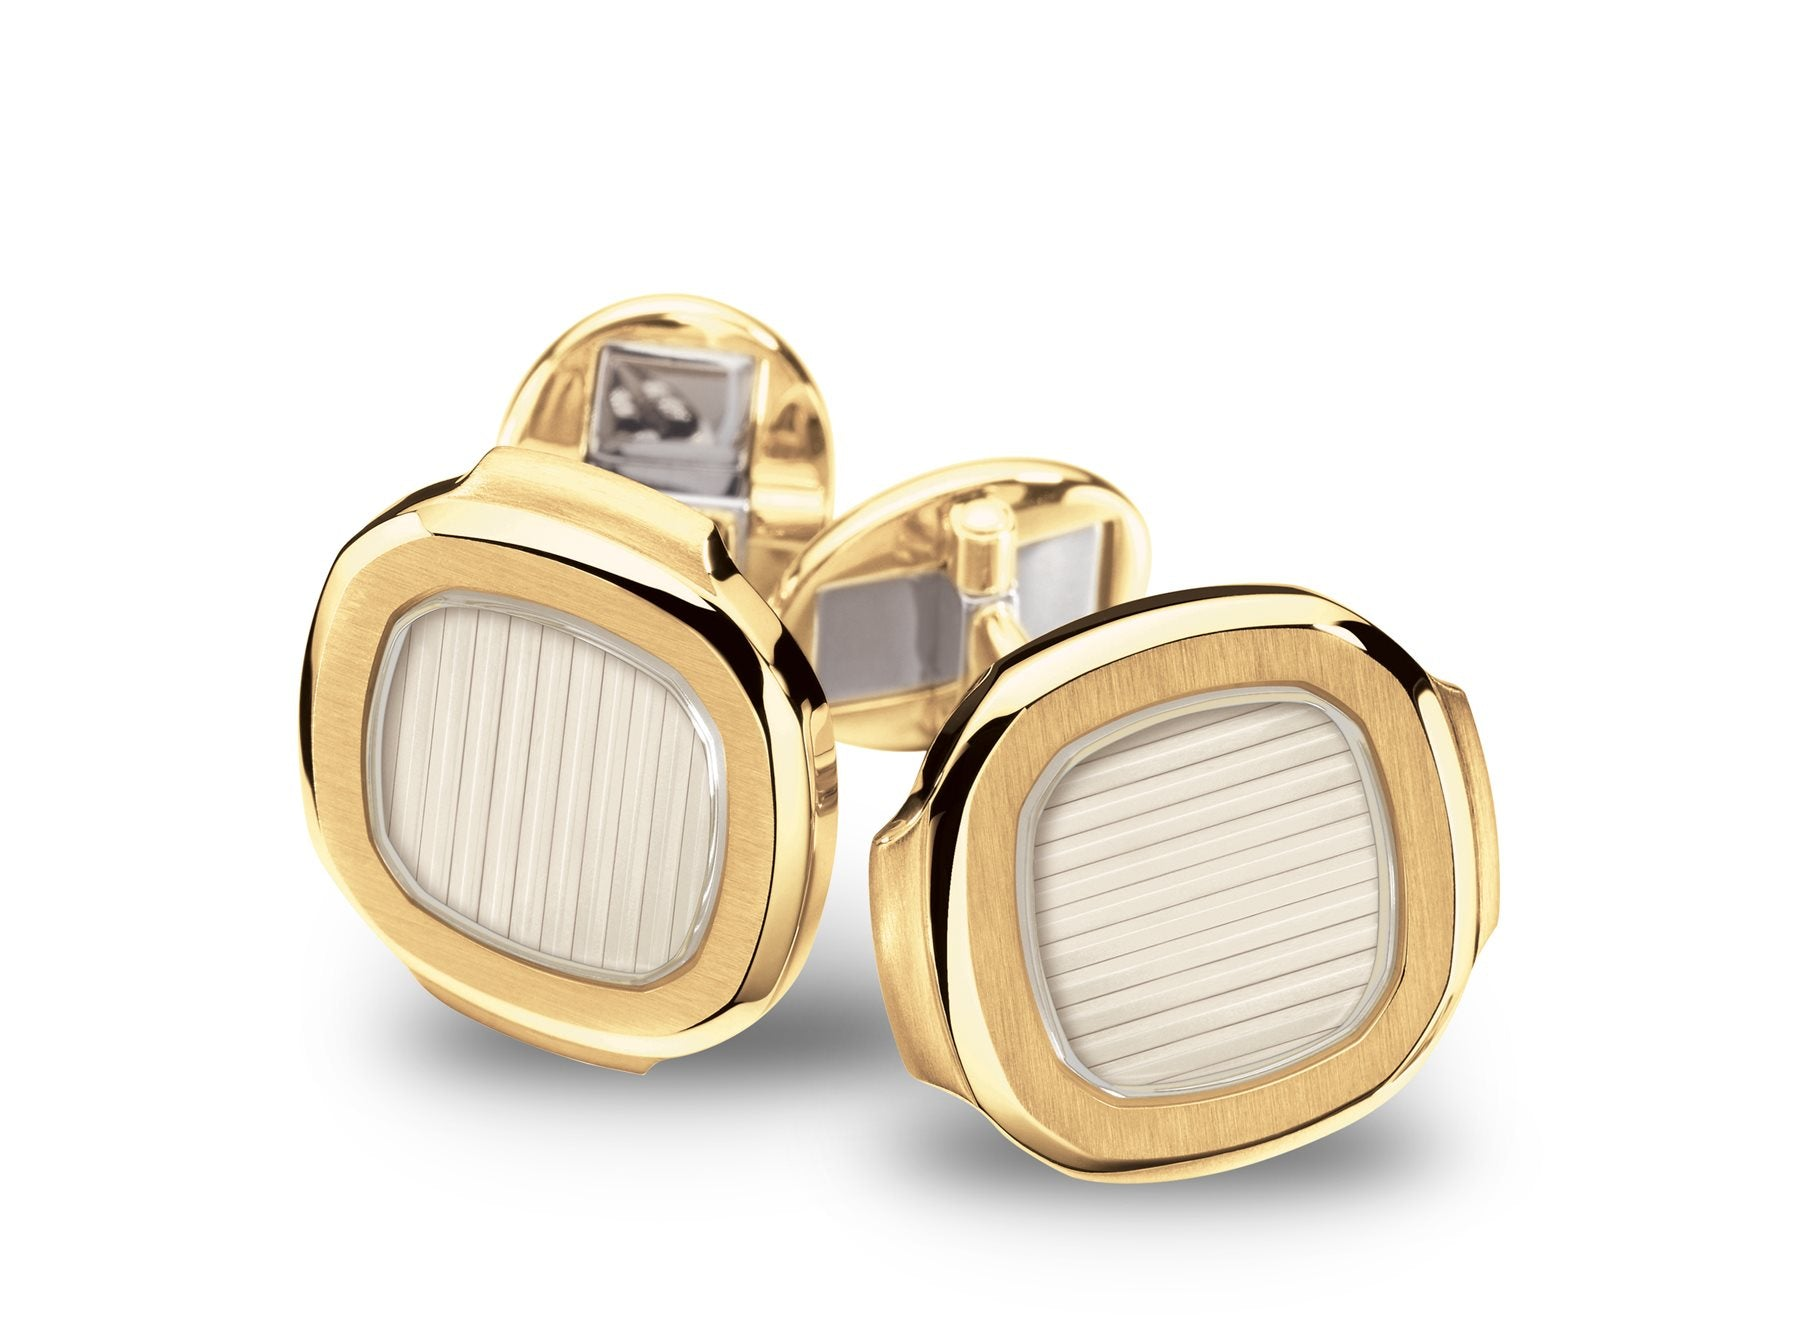 Nautilus Cuff Links